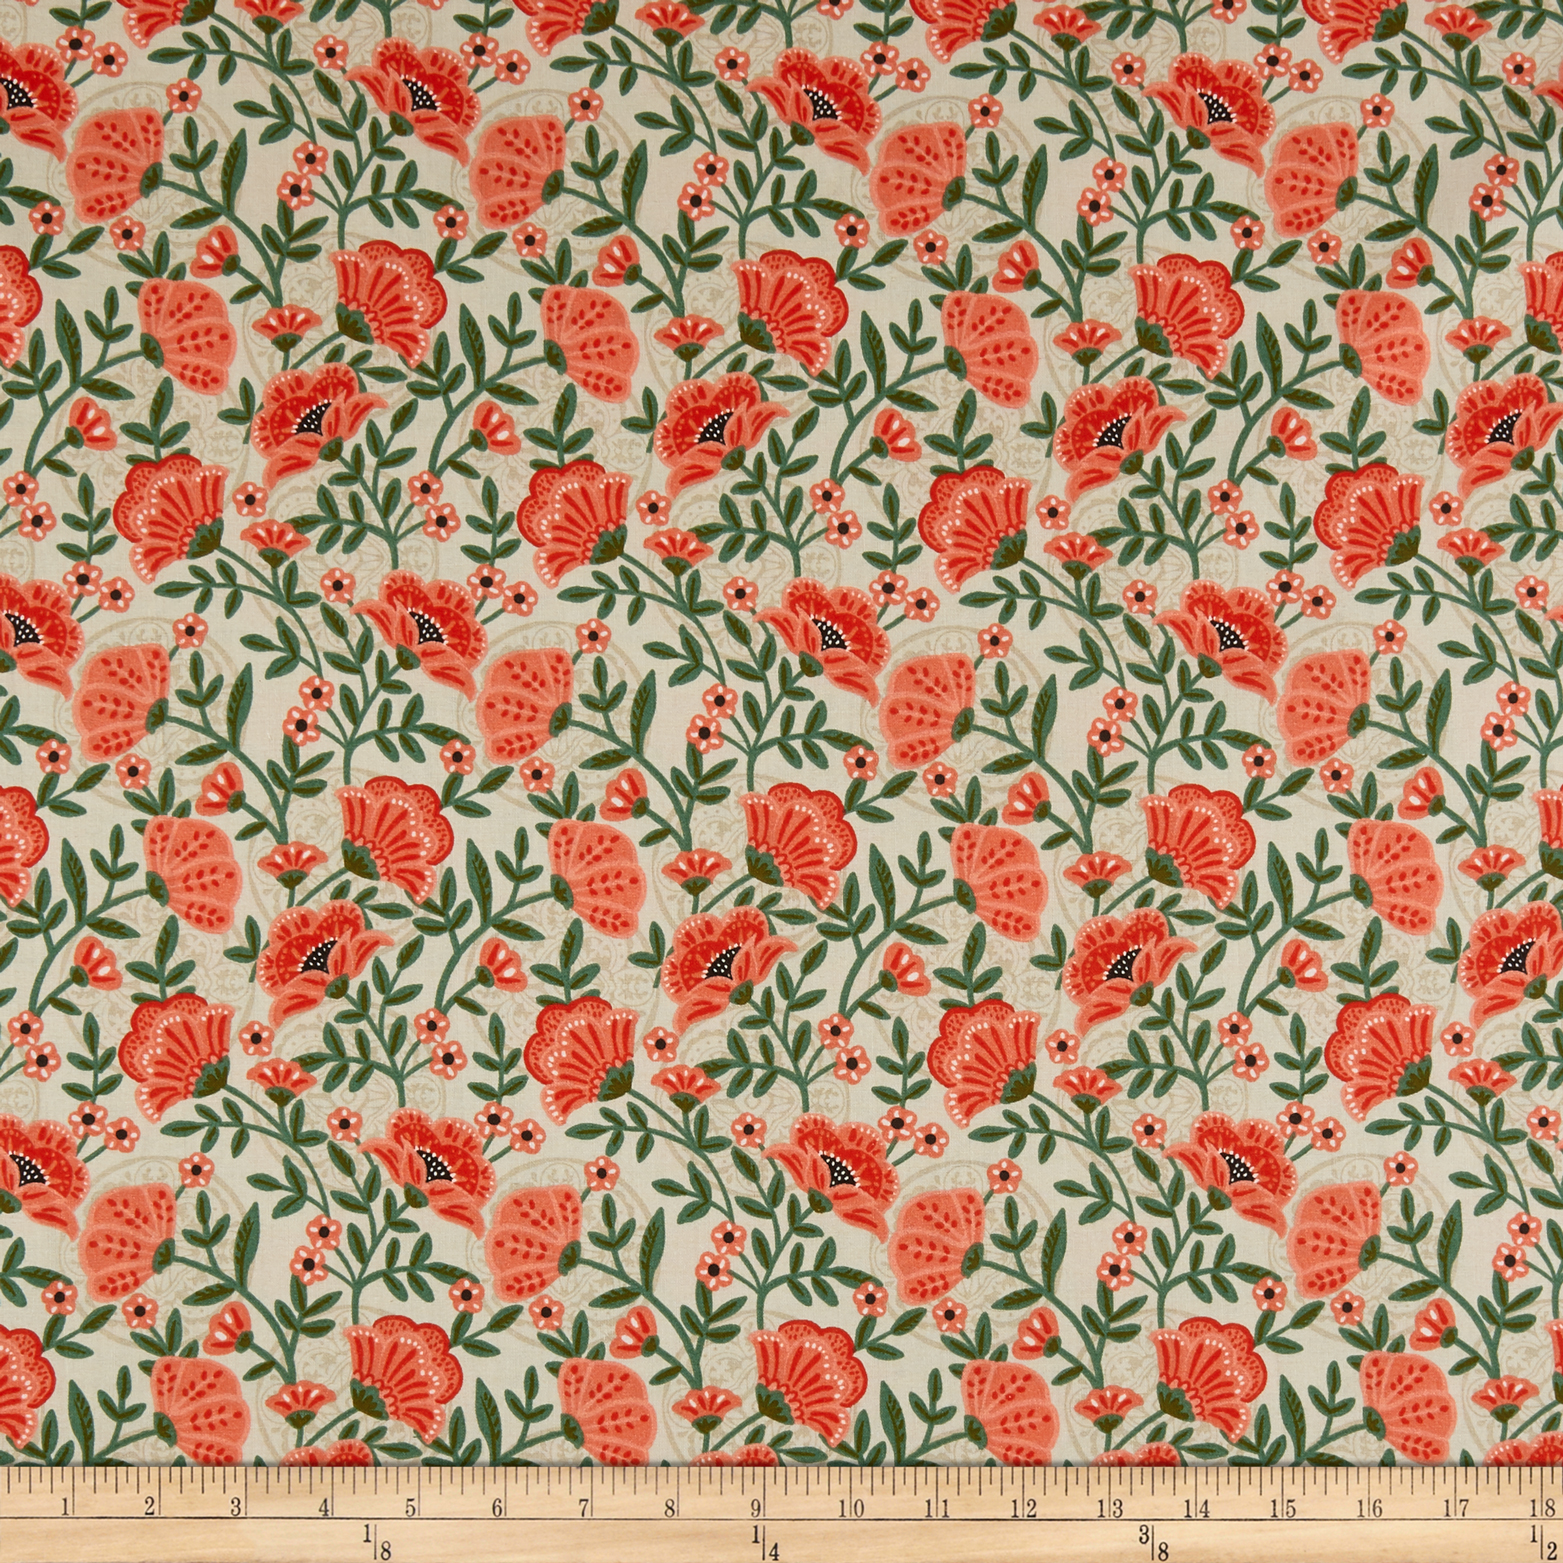 INOpets.com Anything for Pets Parents & Their Pets Fabric Editions Glorious Garden Flowers